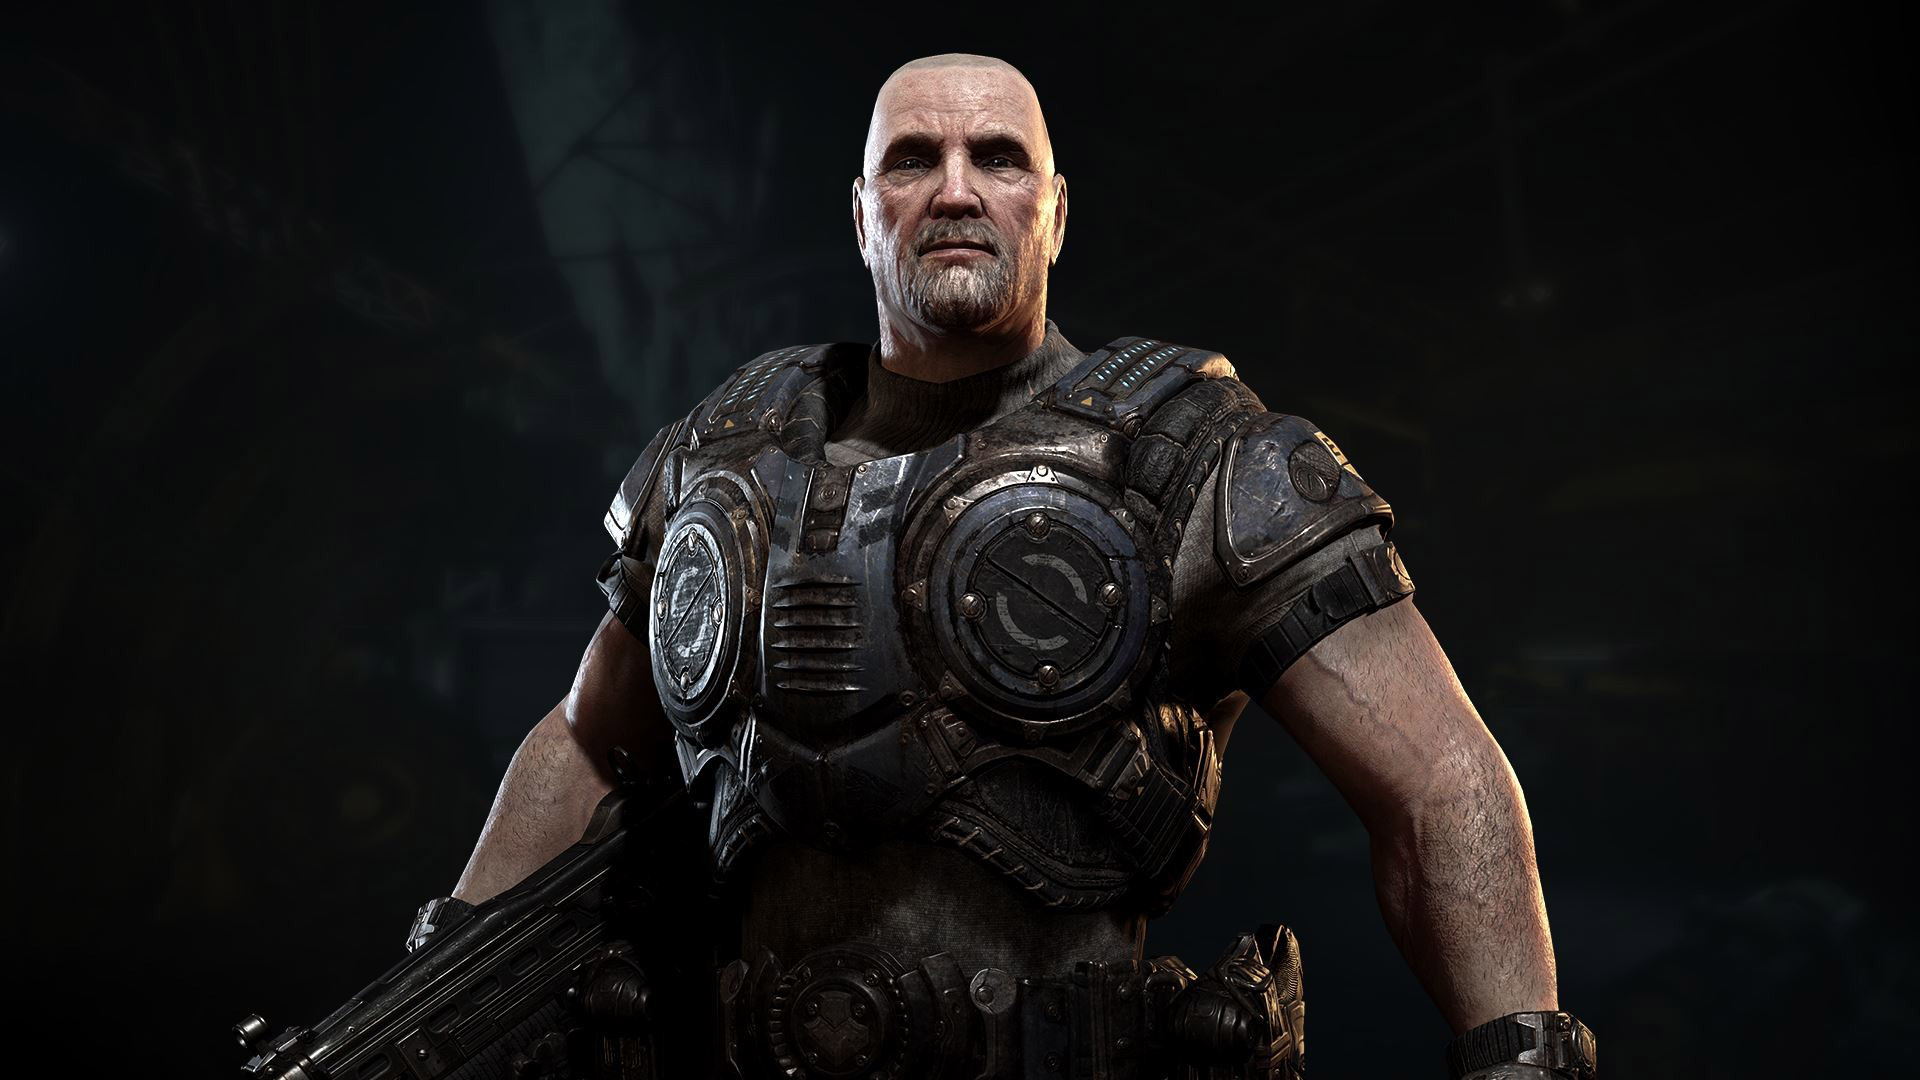 Free Gears of War Wallpaper in 1920x1080